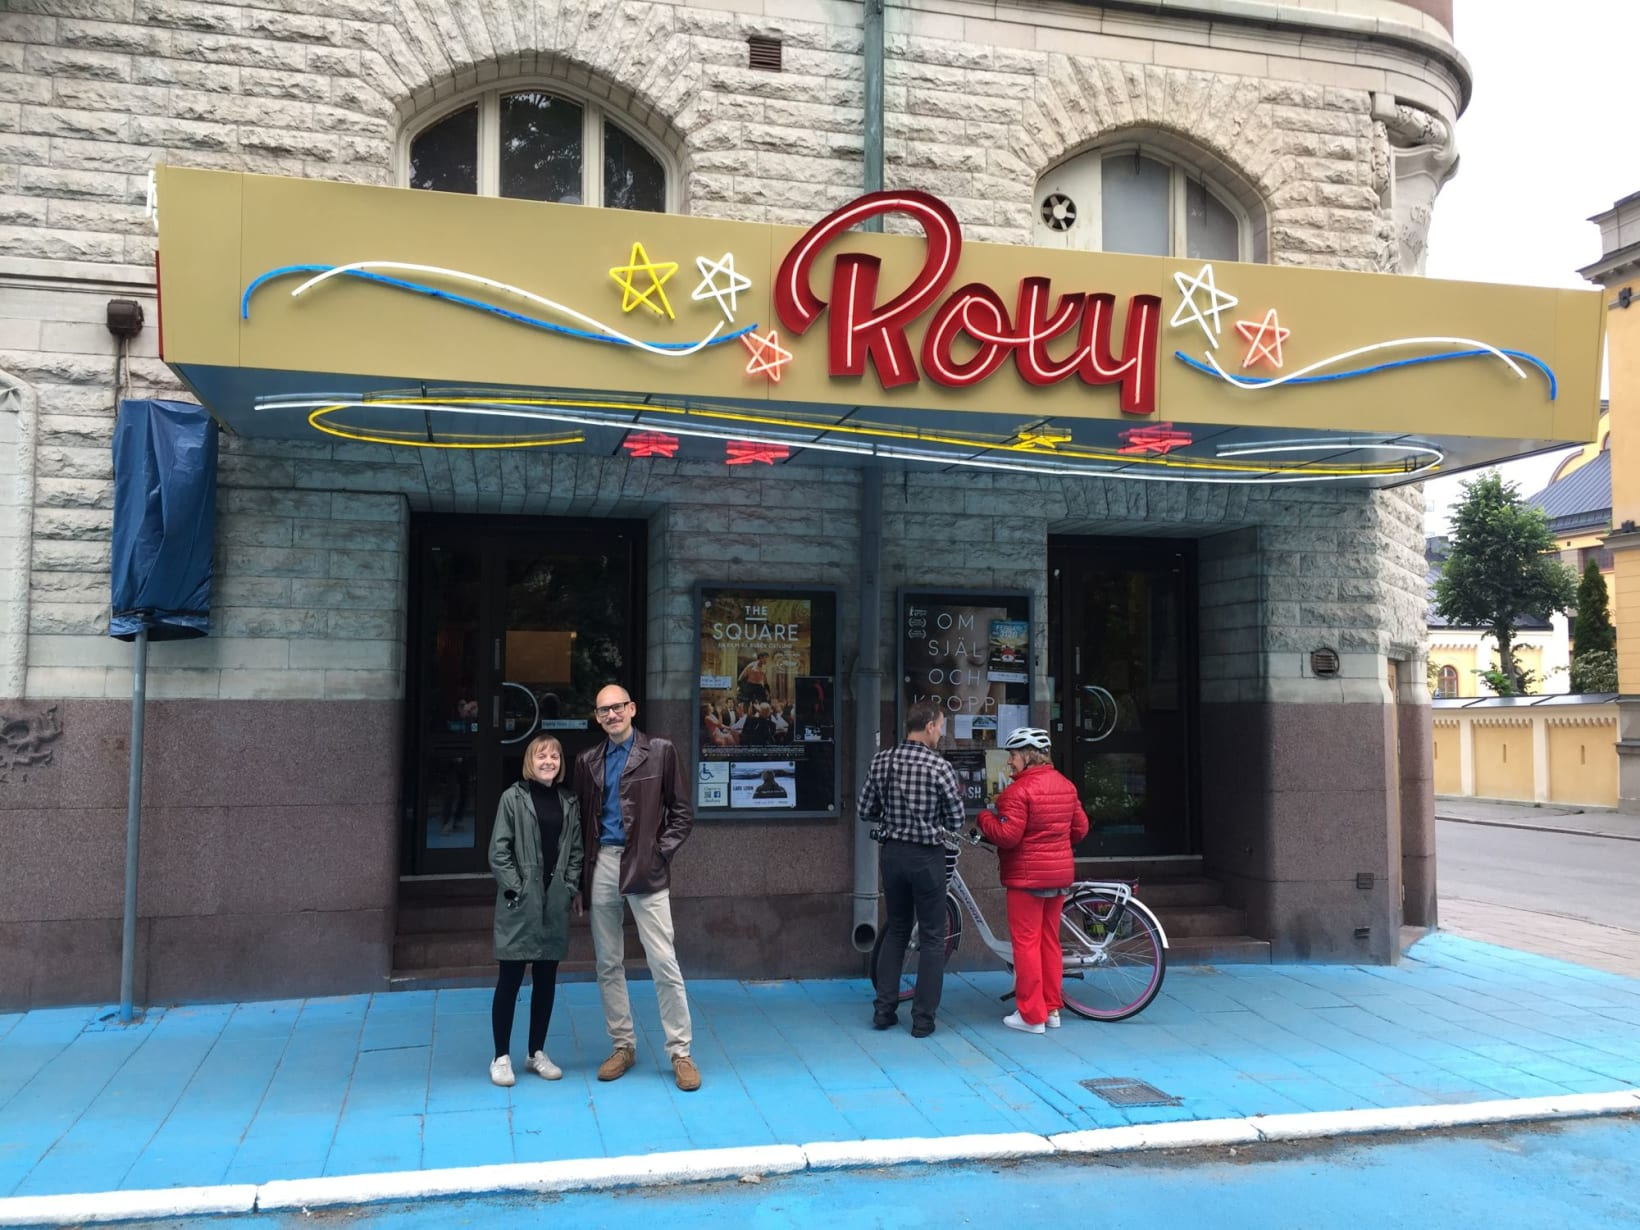 Photograph of Amy and Bo stood outside the front of the Roxy Cinema, which has an illuminated sign with stars and Roxy in large red letters.